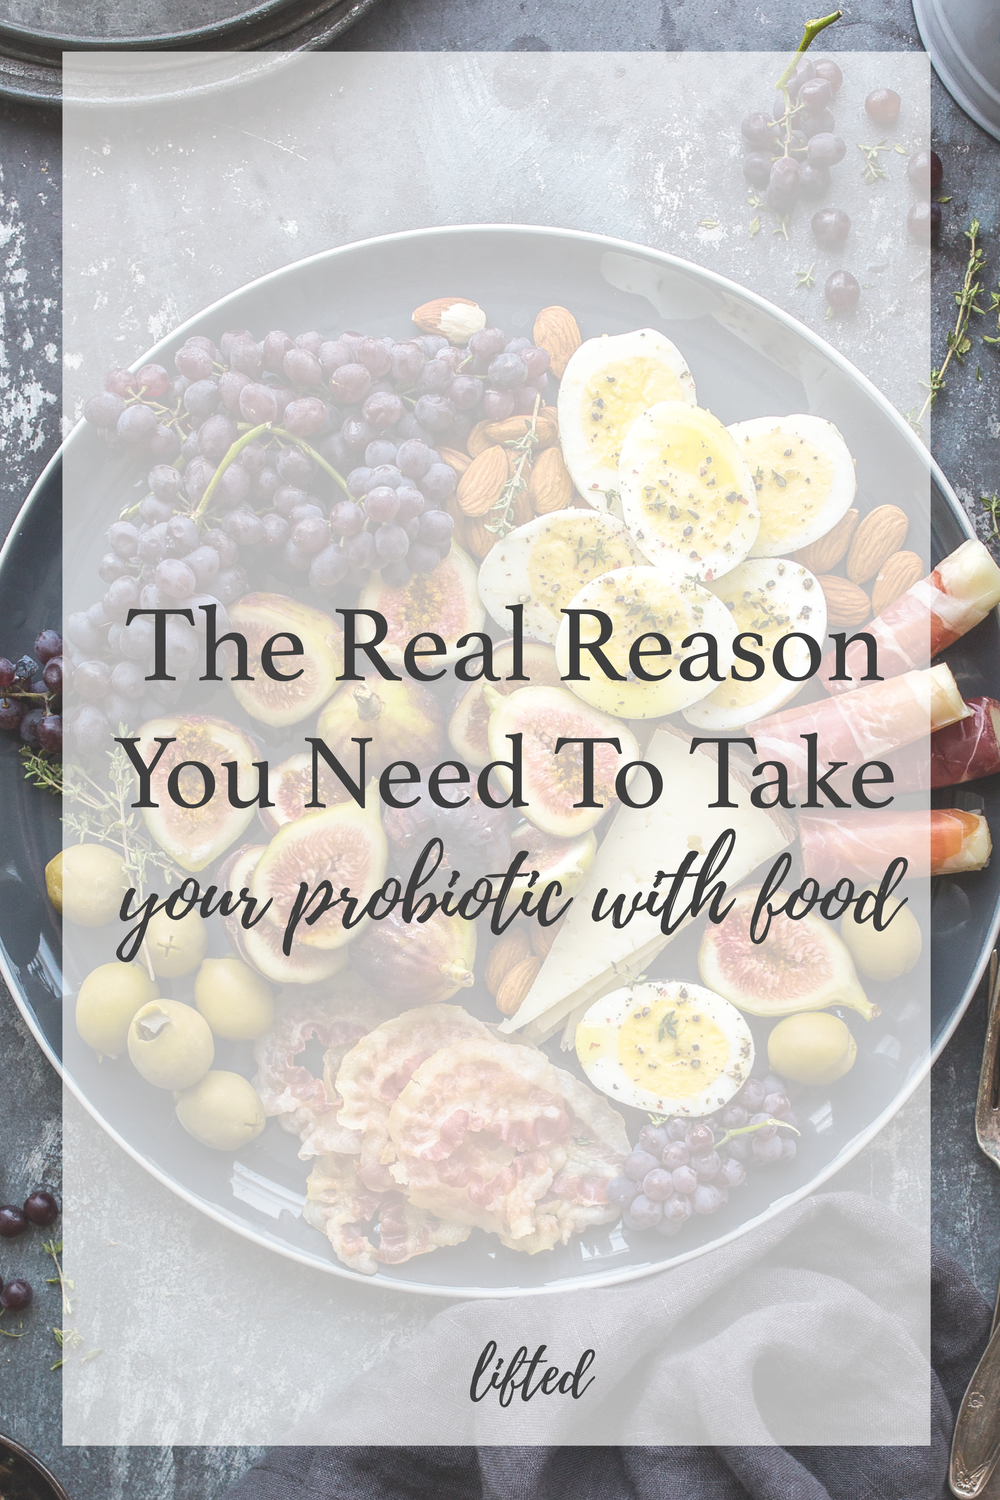 The Real Reason To Take Your Probiotic With Food